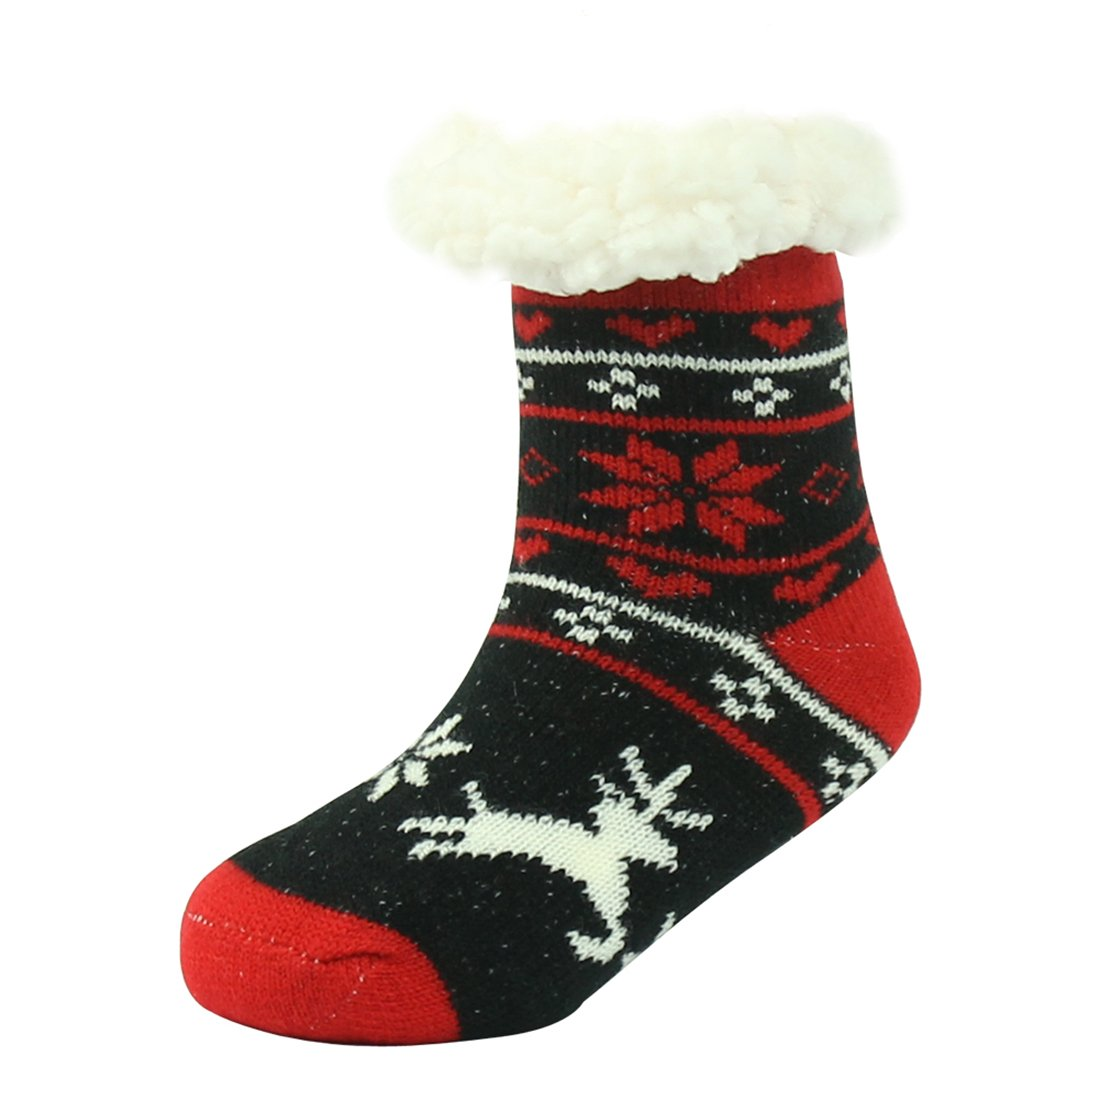 Forfoot Girls Non Slip/Skid Casual Fluffy Plush Lined Knit Holiday Winter Fluffy Chenille Socks Black&Red Dear